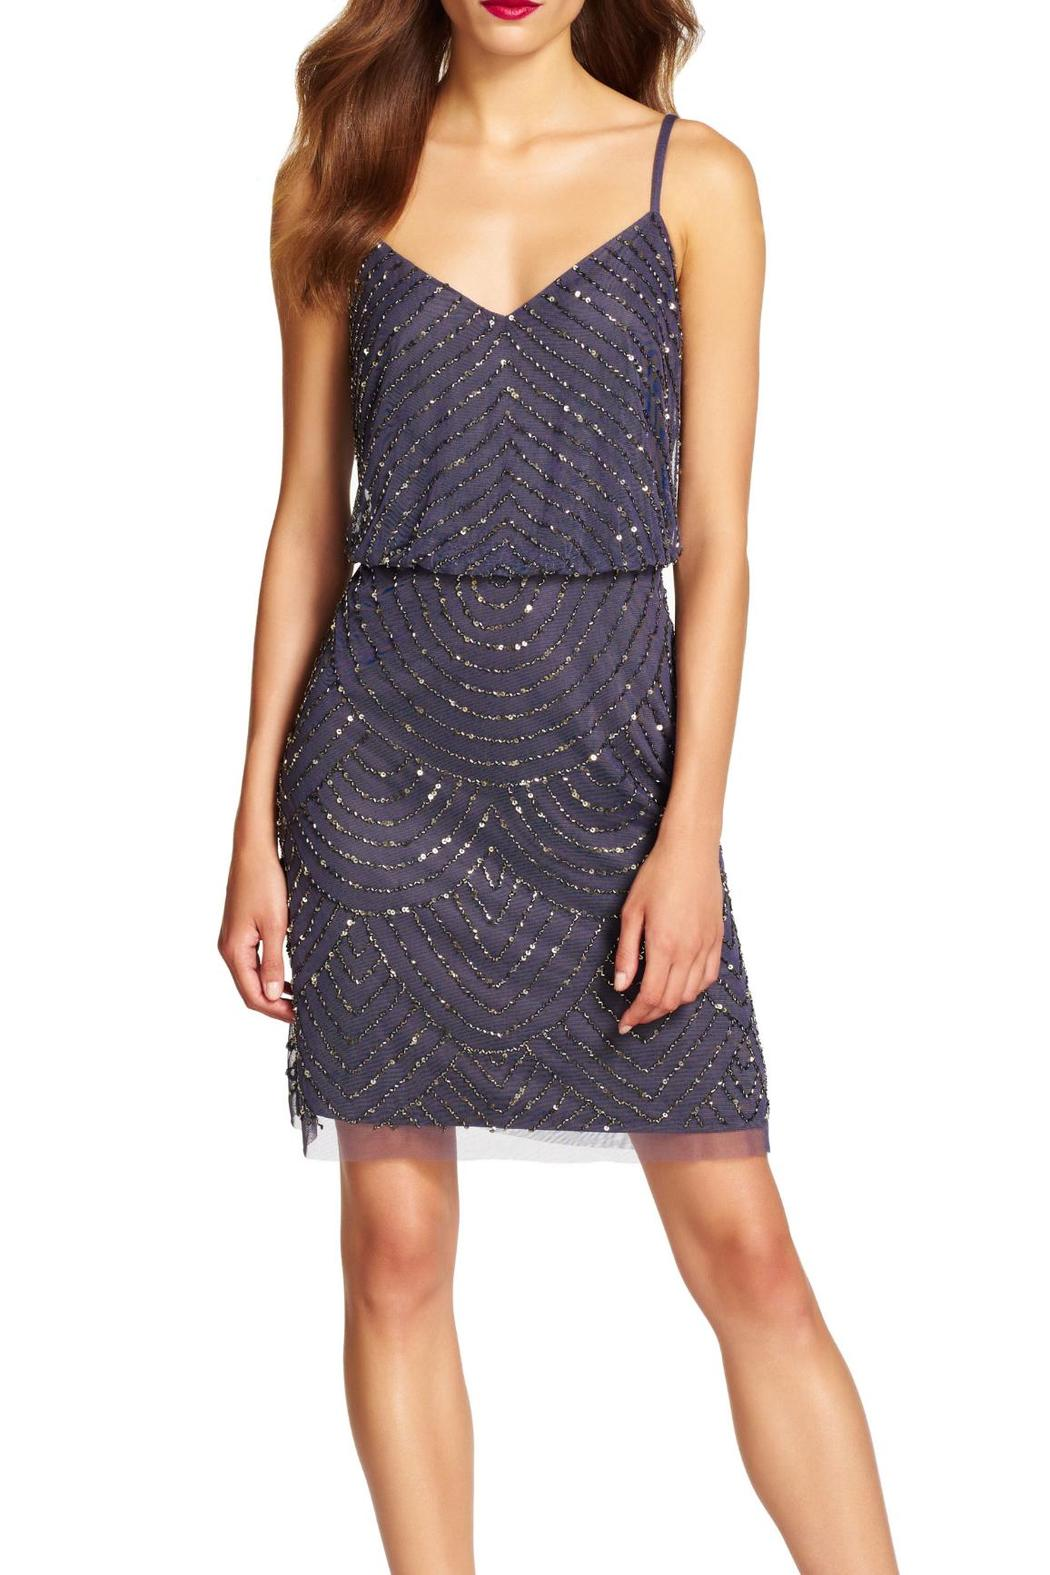 Adrianna Papell Beaded Blouson Dress from Georgia by High ...